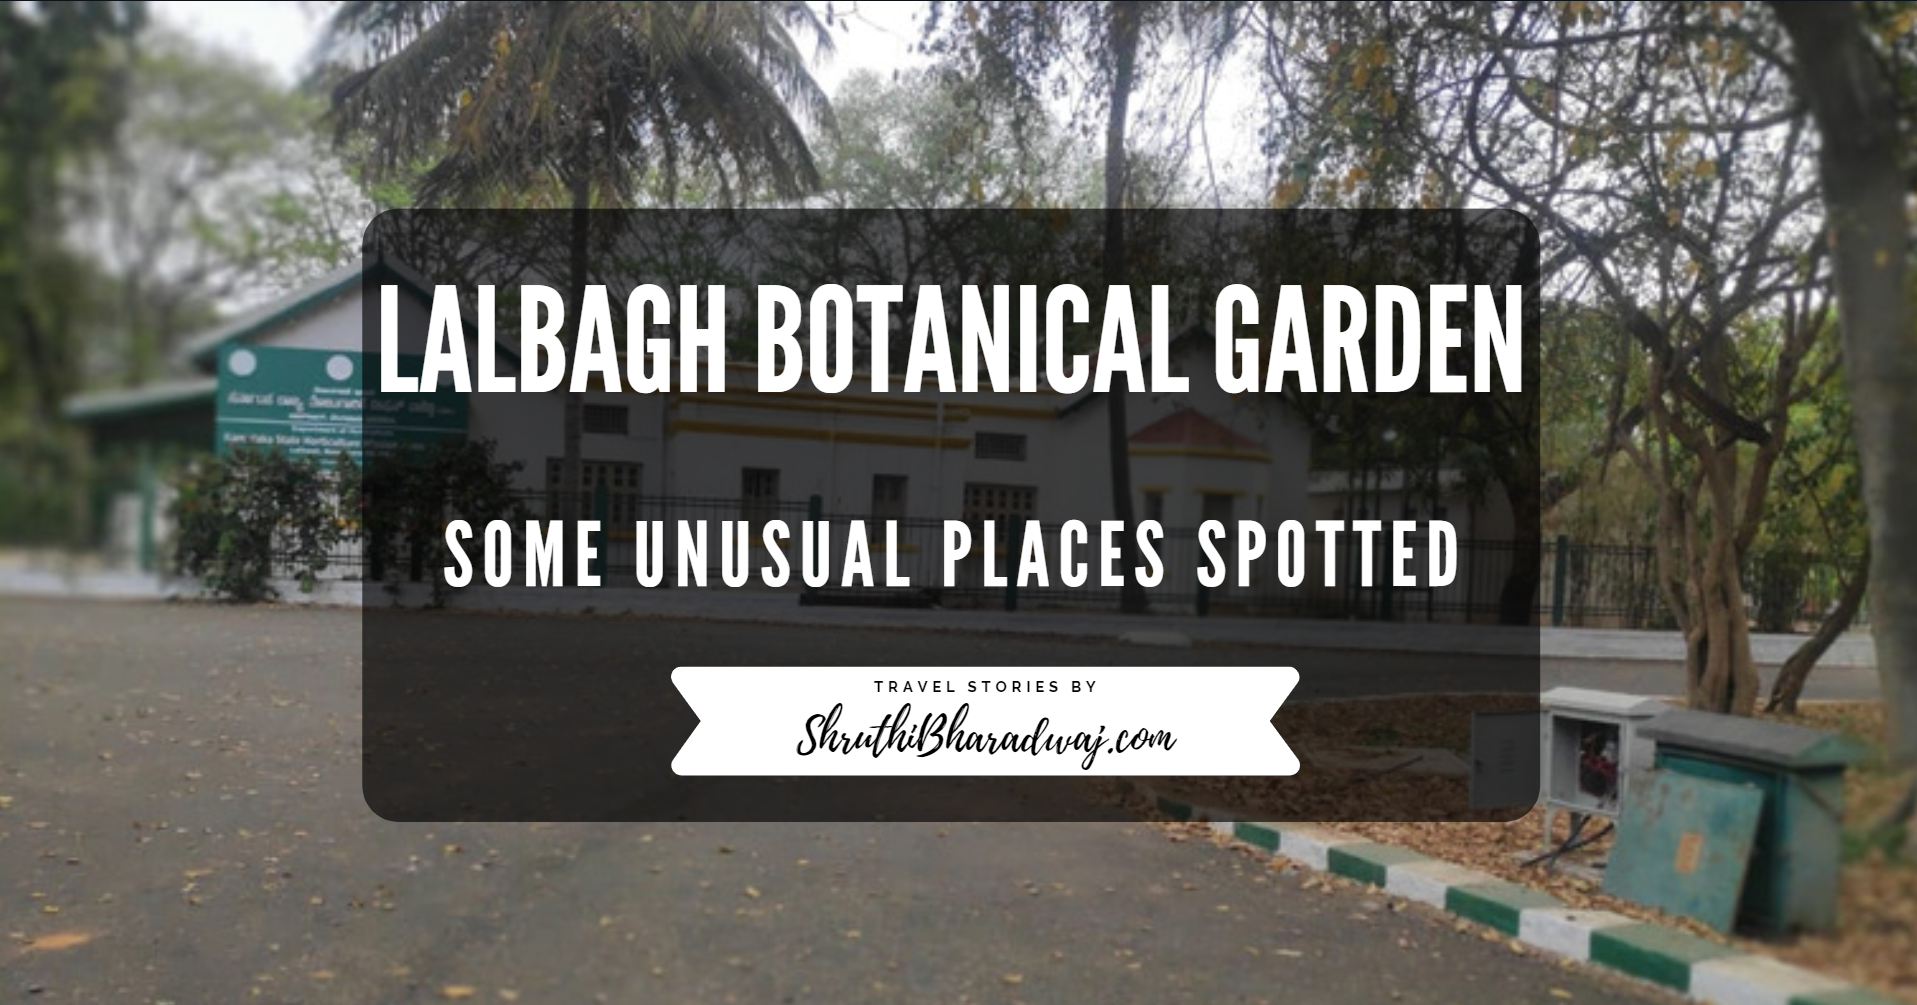 Lalbagh botanical garden_bangalore_places to visit in bangalore_shruthibharadwaj_cover pic 1